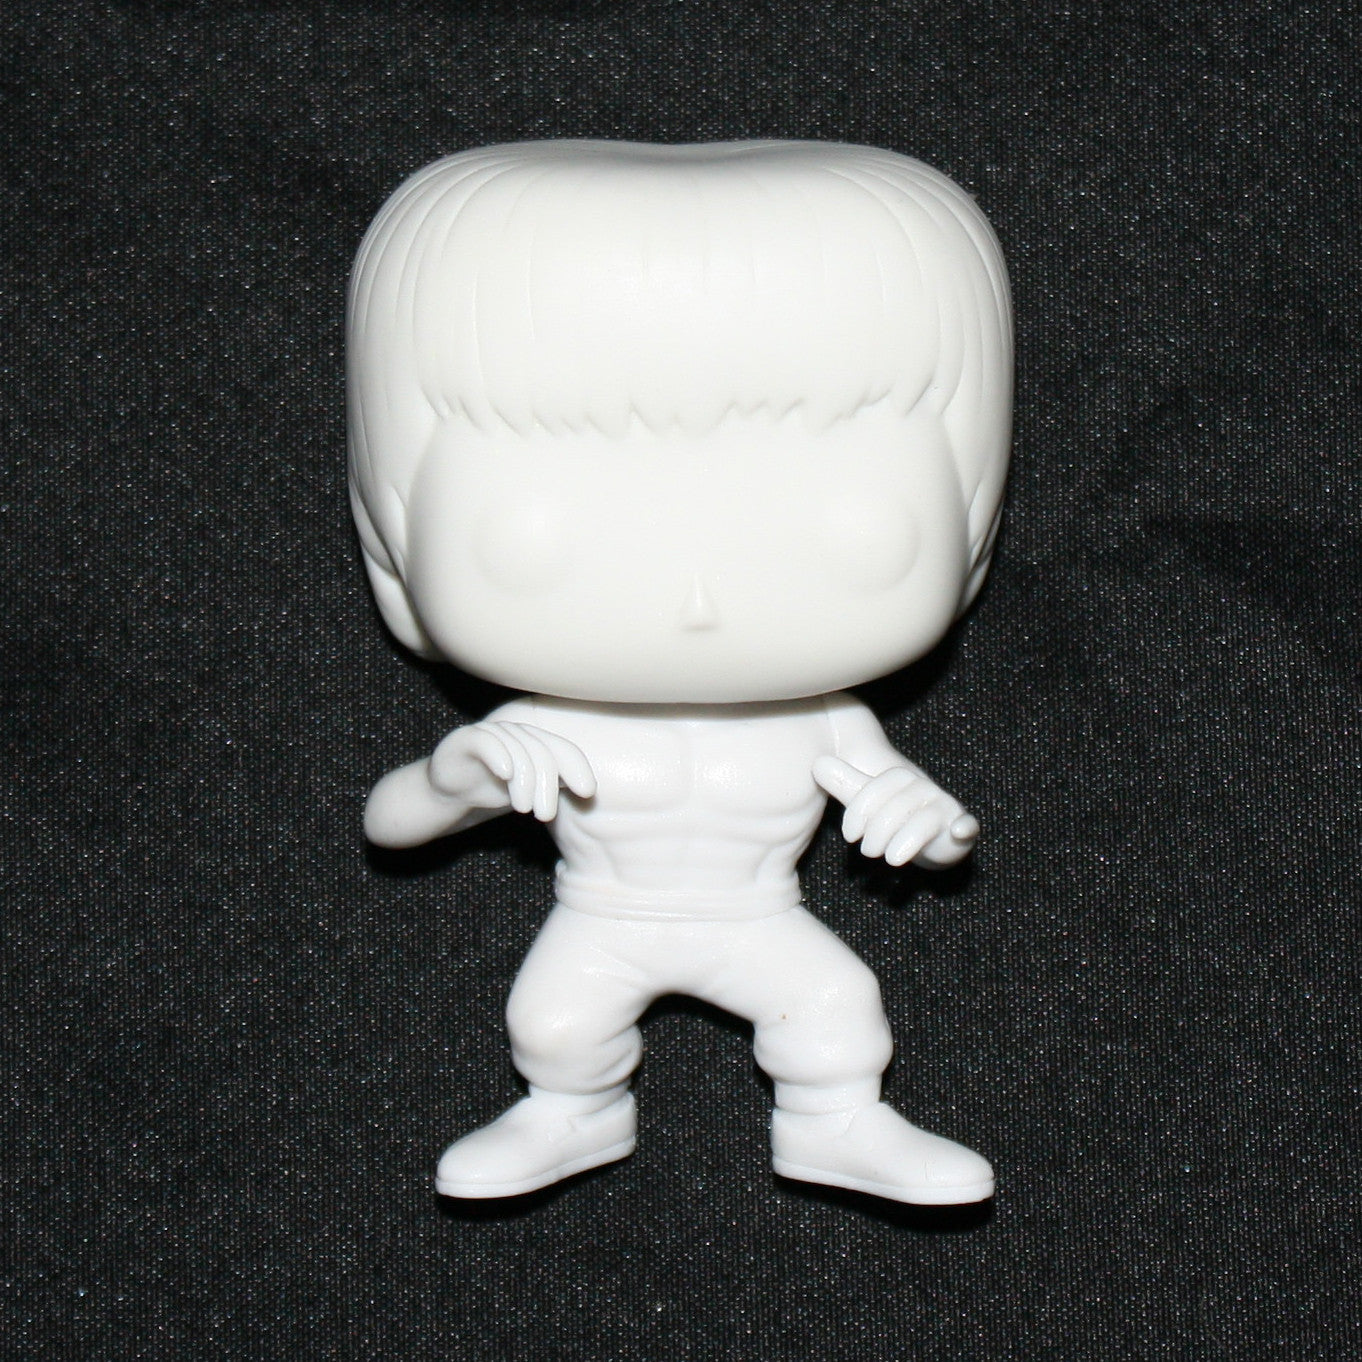 Bruce Lee WHITE [Enter the Dragon] Proto - Fugitive Toys